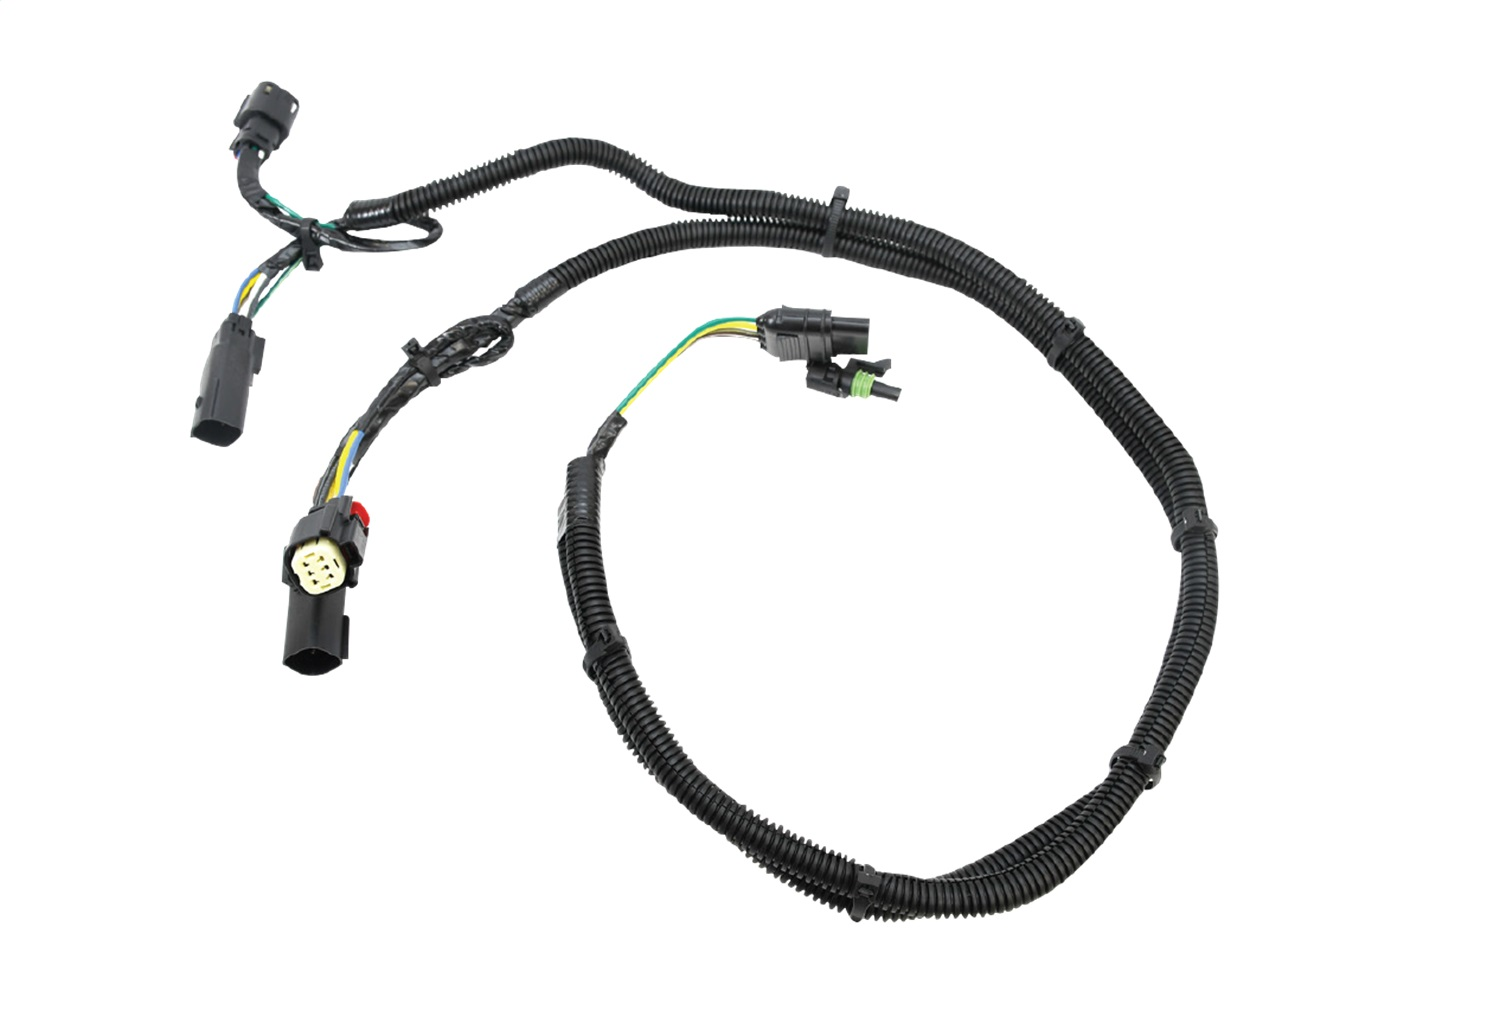 Putco Blade Quick Connect Harness Fits 19 20 Sierra